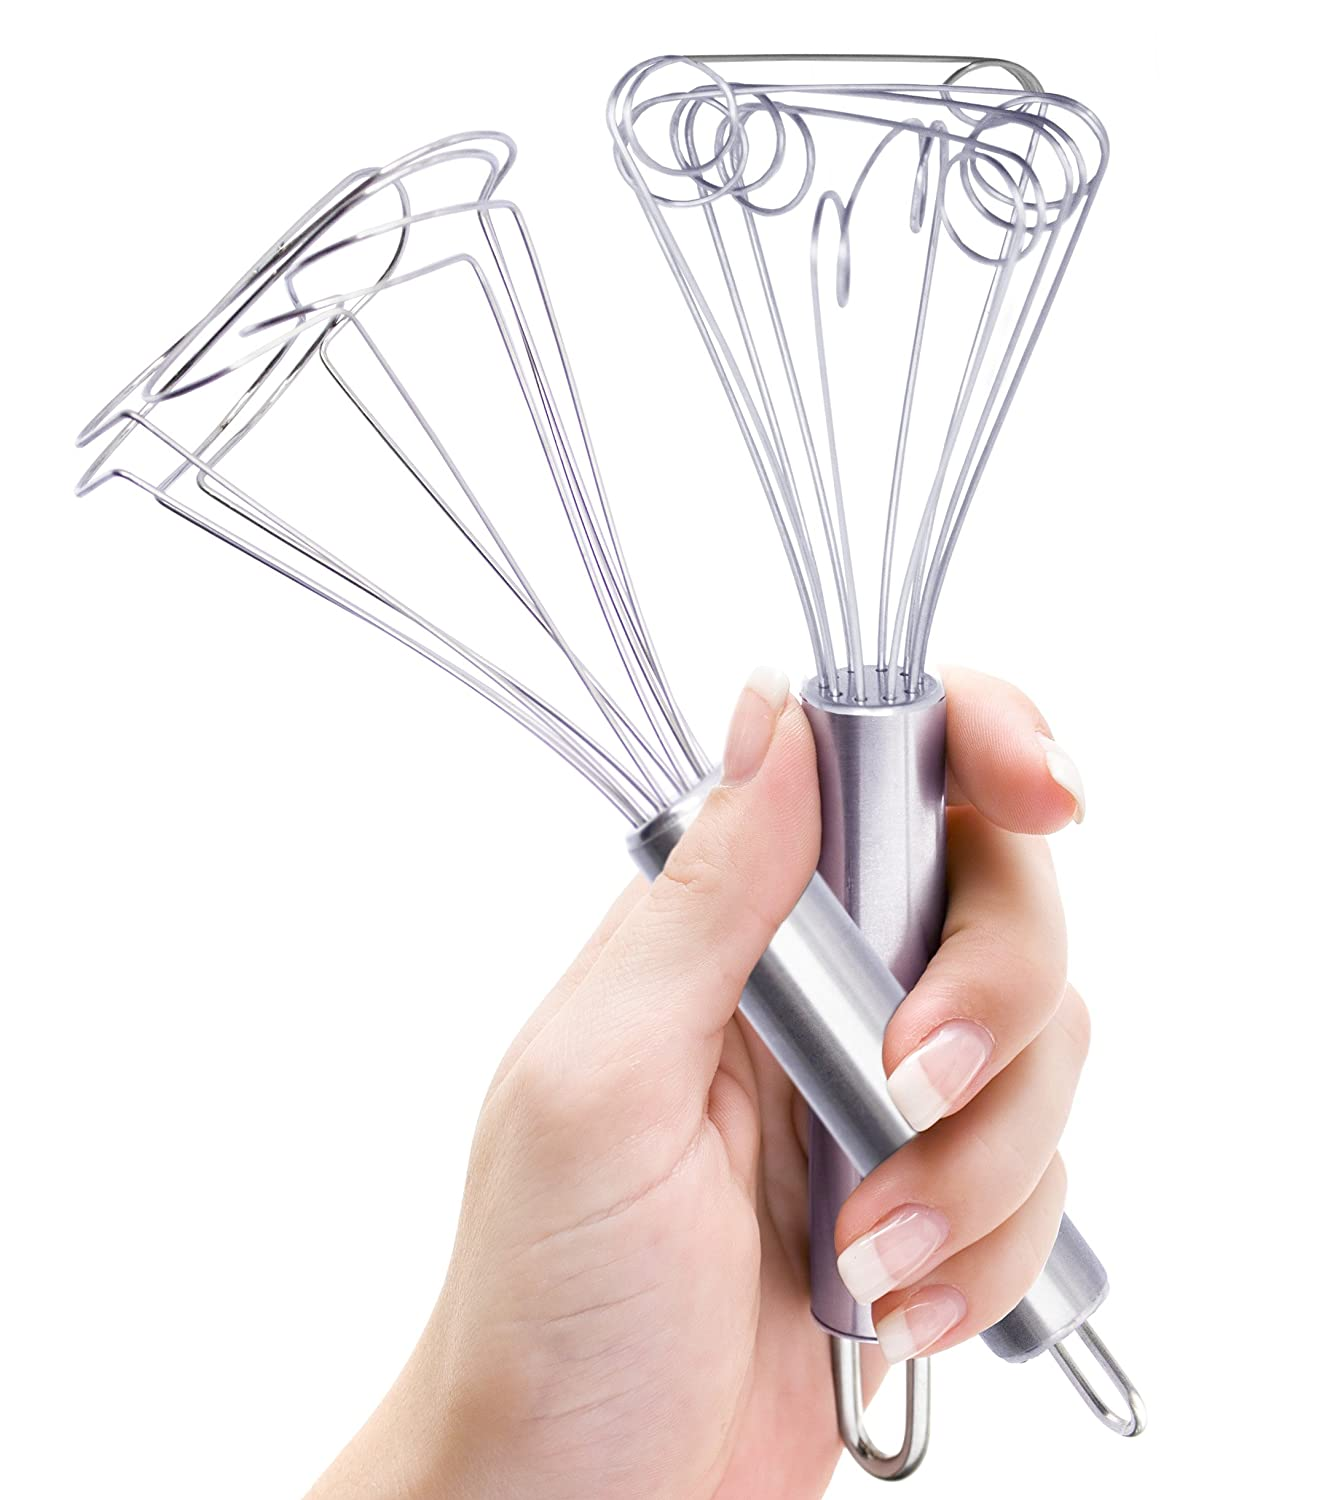 E4U Micro Whisk Stainless Steel Egg Beater - Small Whisk Set For All Cooks And Perfect Kitchen Utensils For Kids Cooking